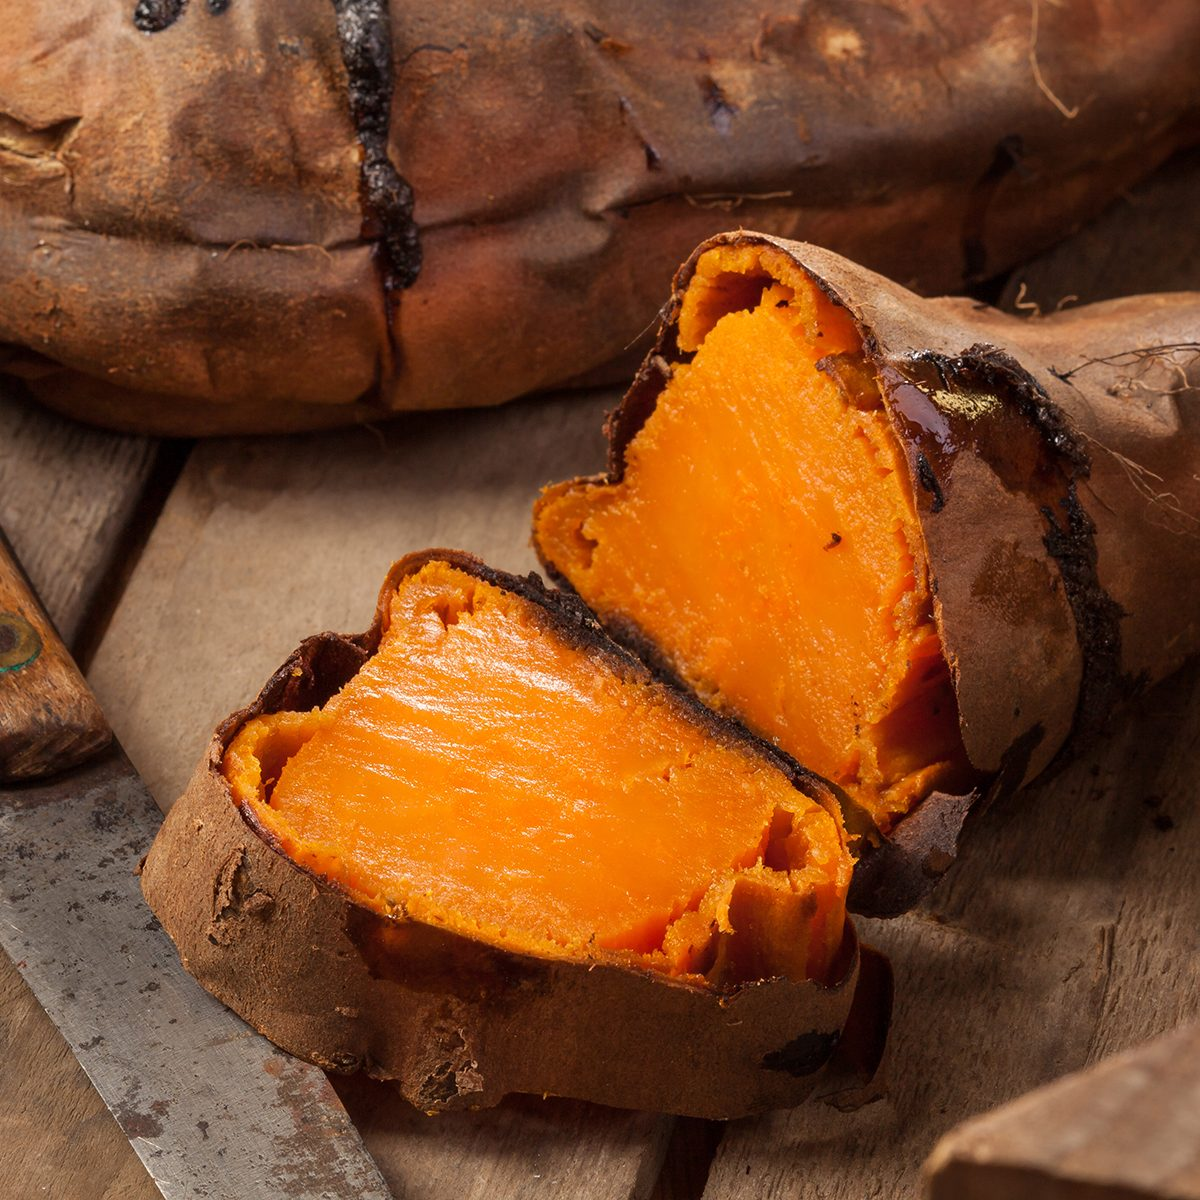 Oven baked sweet potatoes on vintage wood.